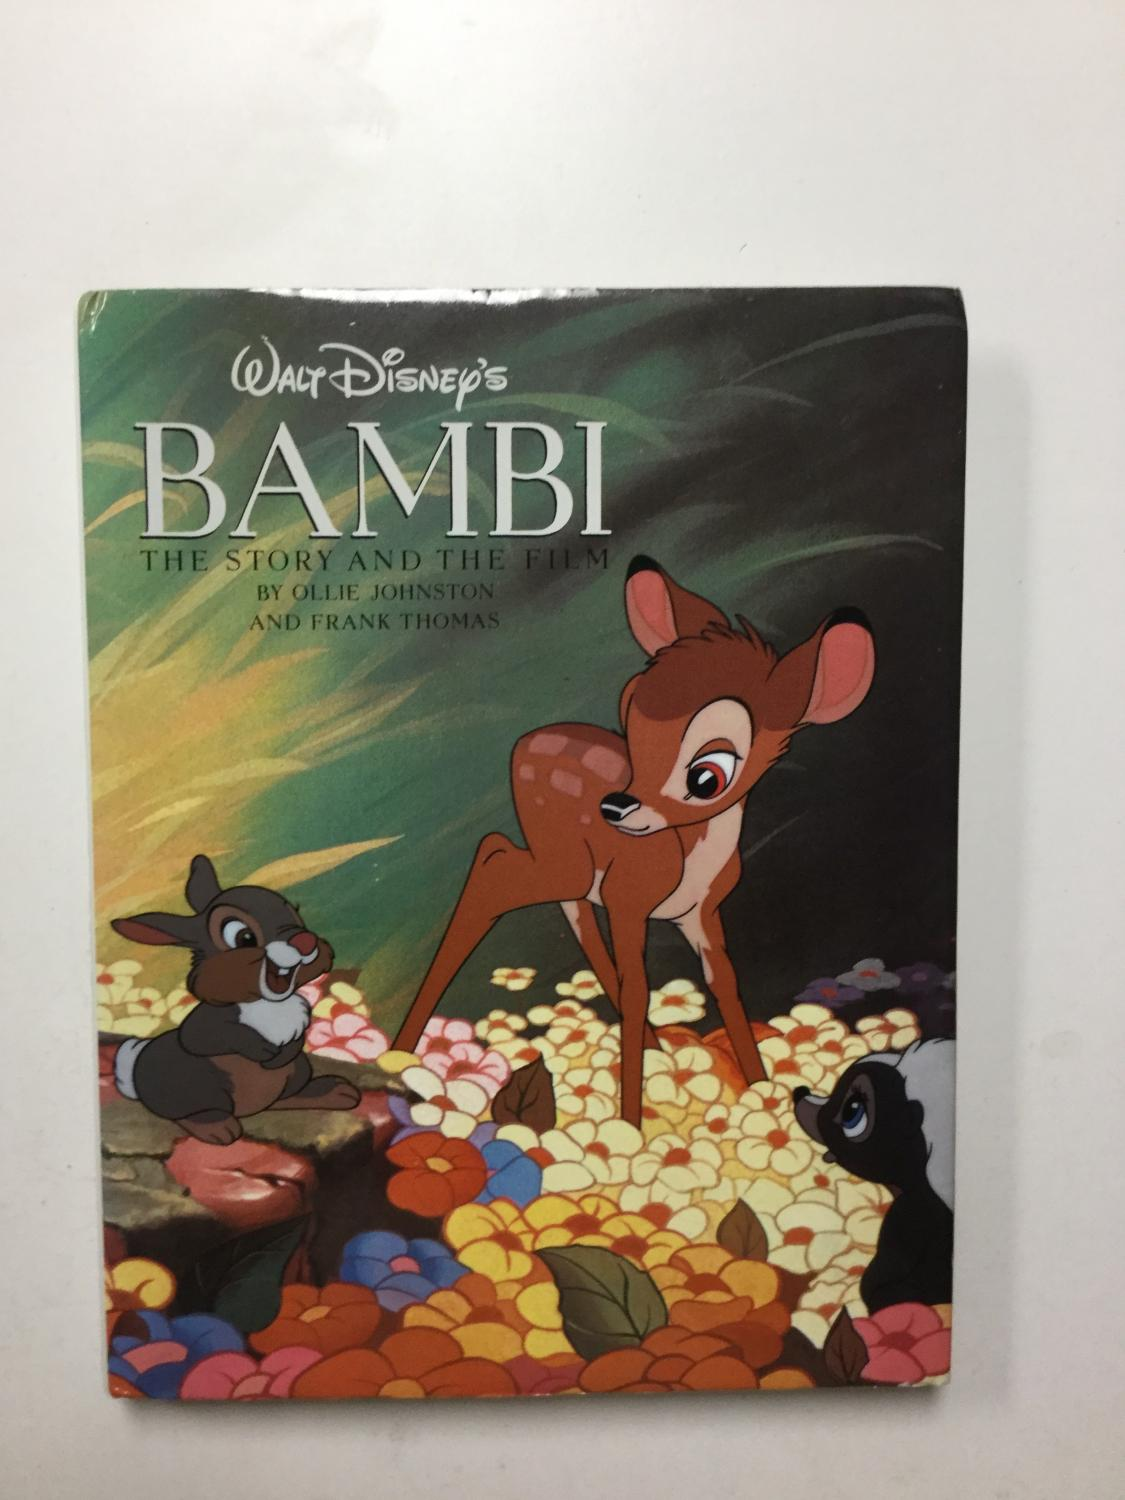 Walt_Disney's_Bambi_The_Story_And_The_Film_Johnston,_Ollie;_Thomas,_Frank_[Near_Fine]_[Hardcover]